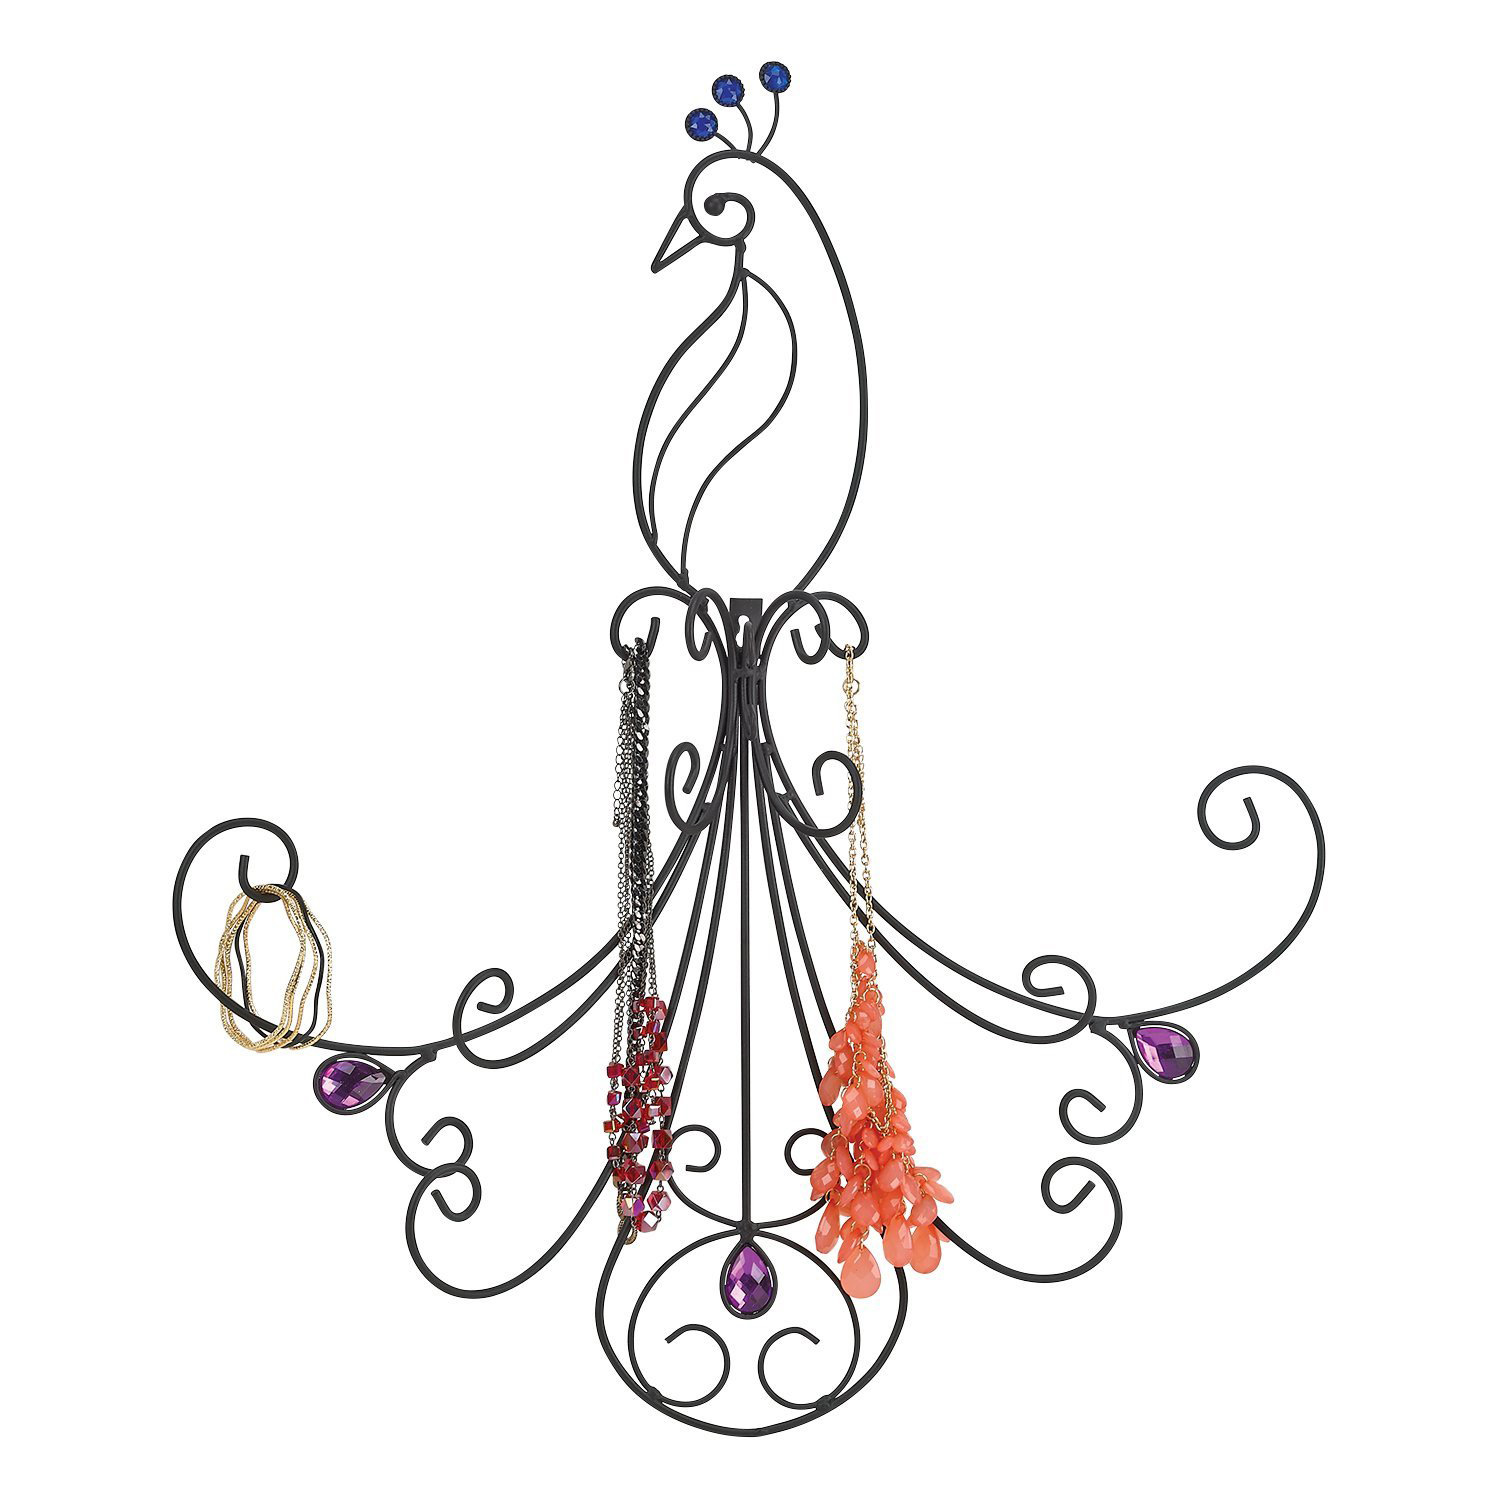 Creative Peacock Shaped Black Metal Wire Wall Mounted Jewelry Holder